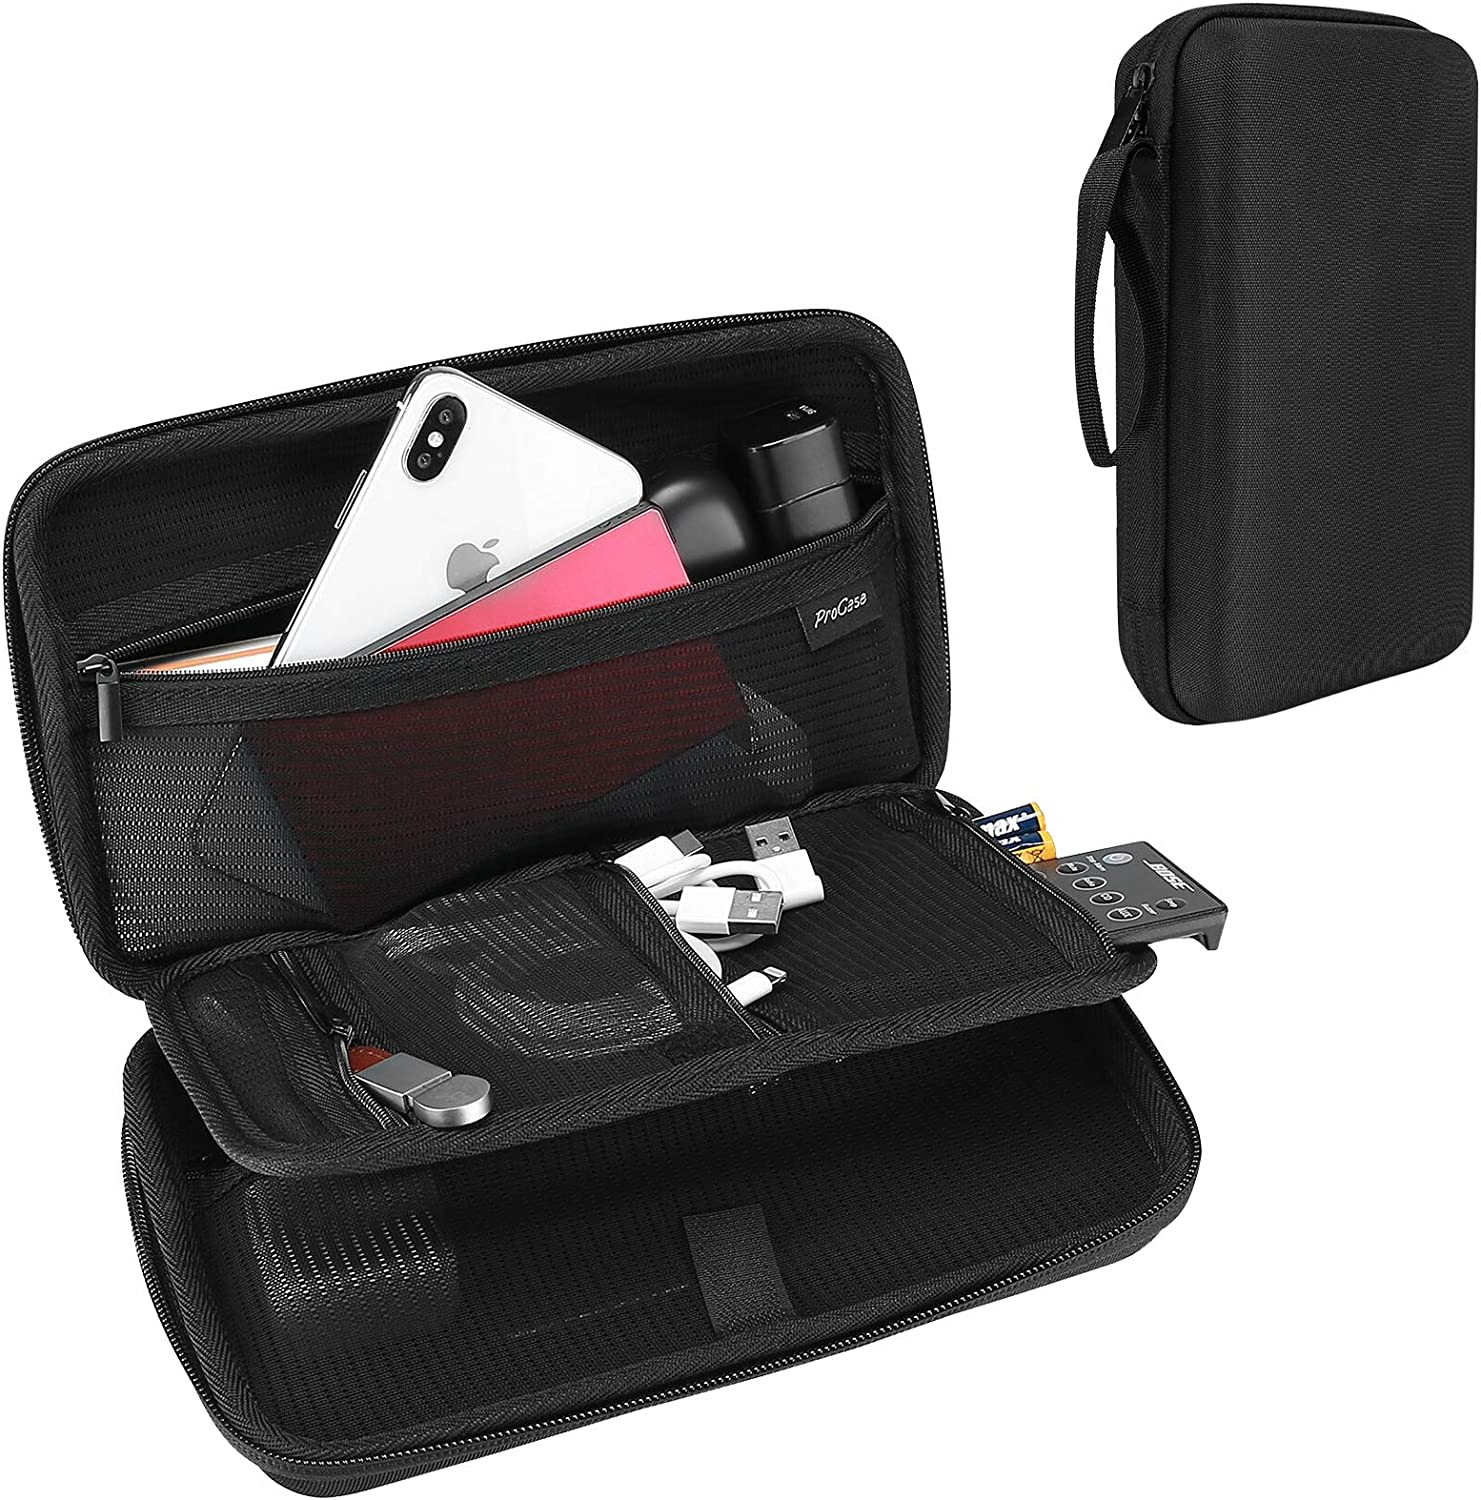 ProCase Hard Travel Tech Organizer Case Bag for Electronics Accessories Charger Cord Portable External Hard Drive USB Cables Power Bank SD Memory Cards Earphone Flash Drive -Black